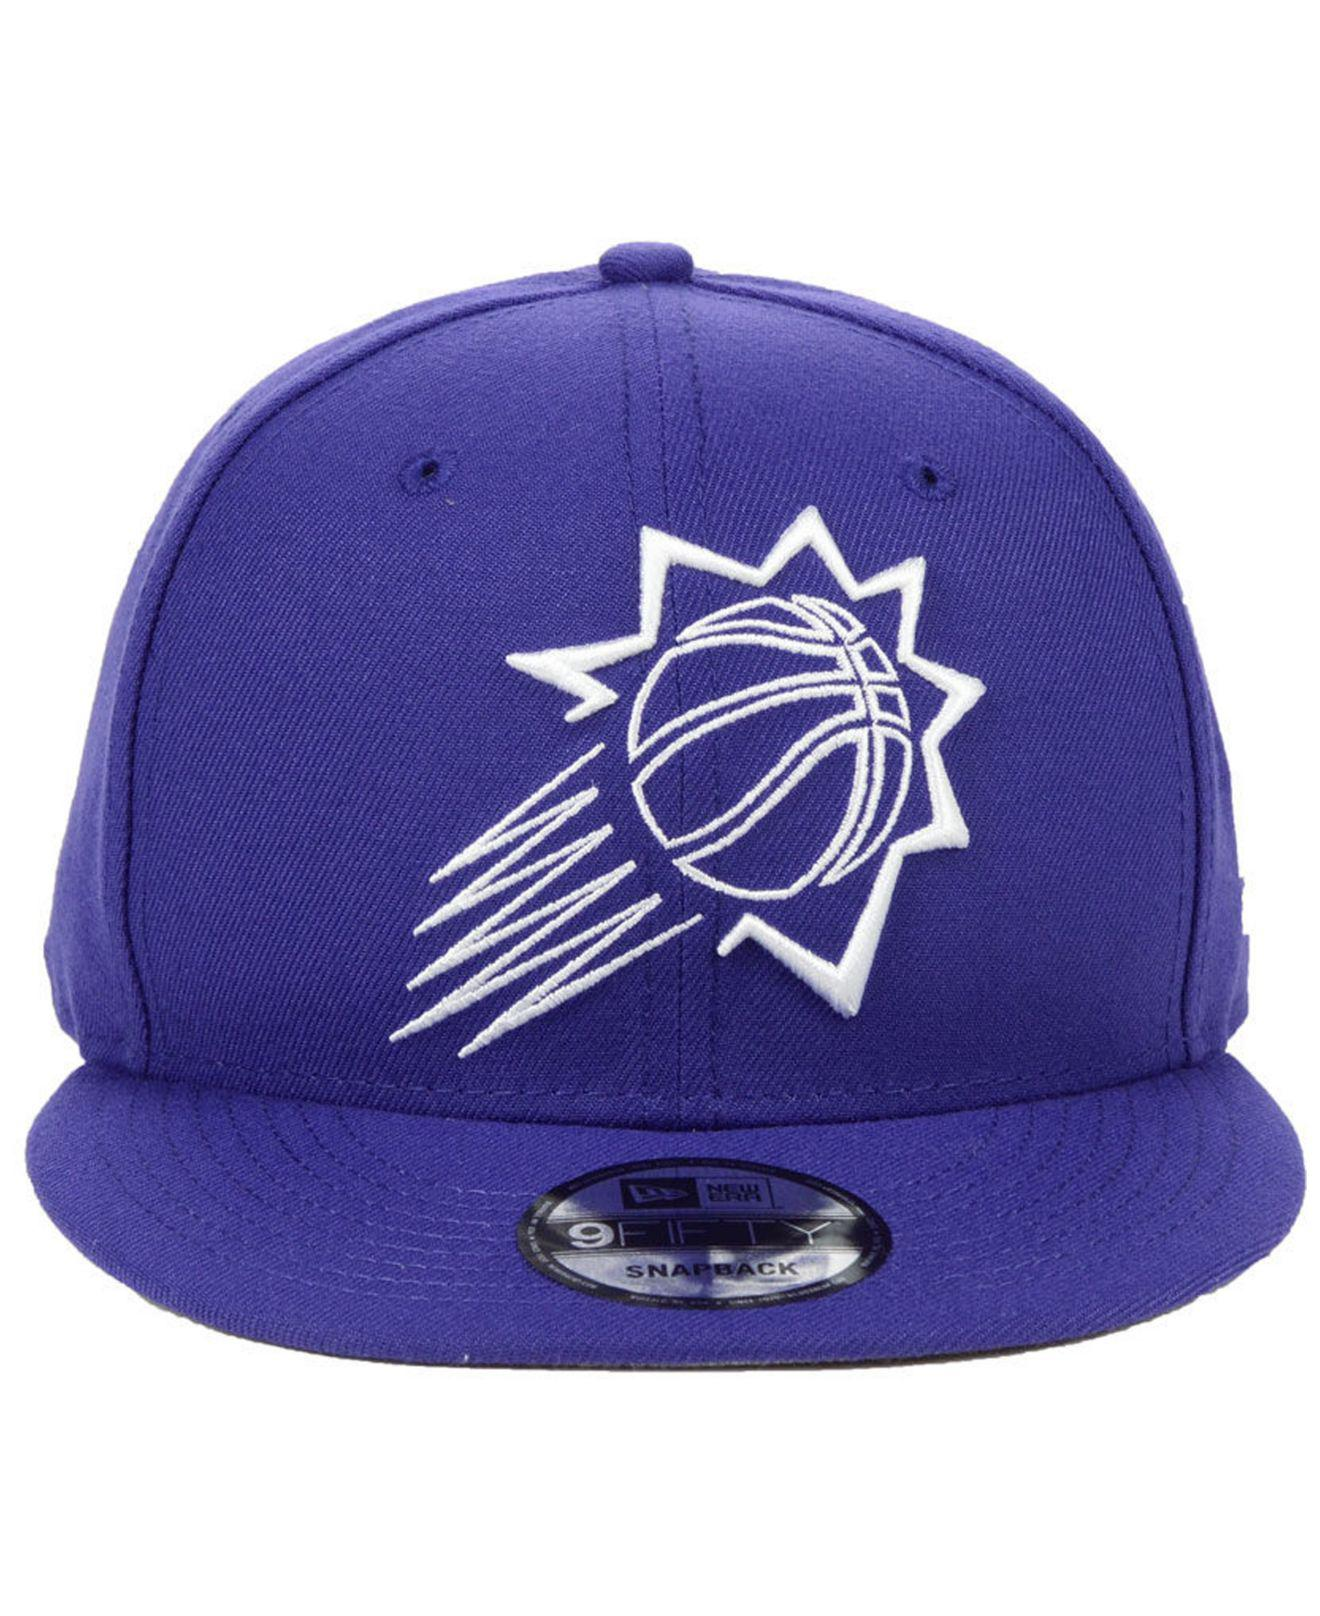 sports shoes 92893 4347f ... new style lyst ktz phoenix suns logo trace 9fifty snapback cap in  purple for men ab41e